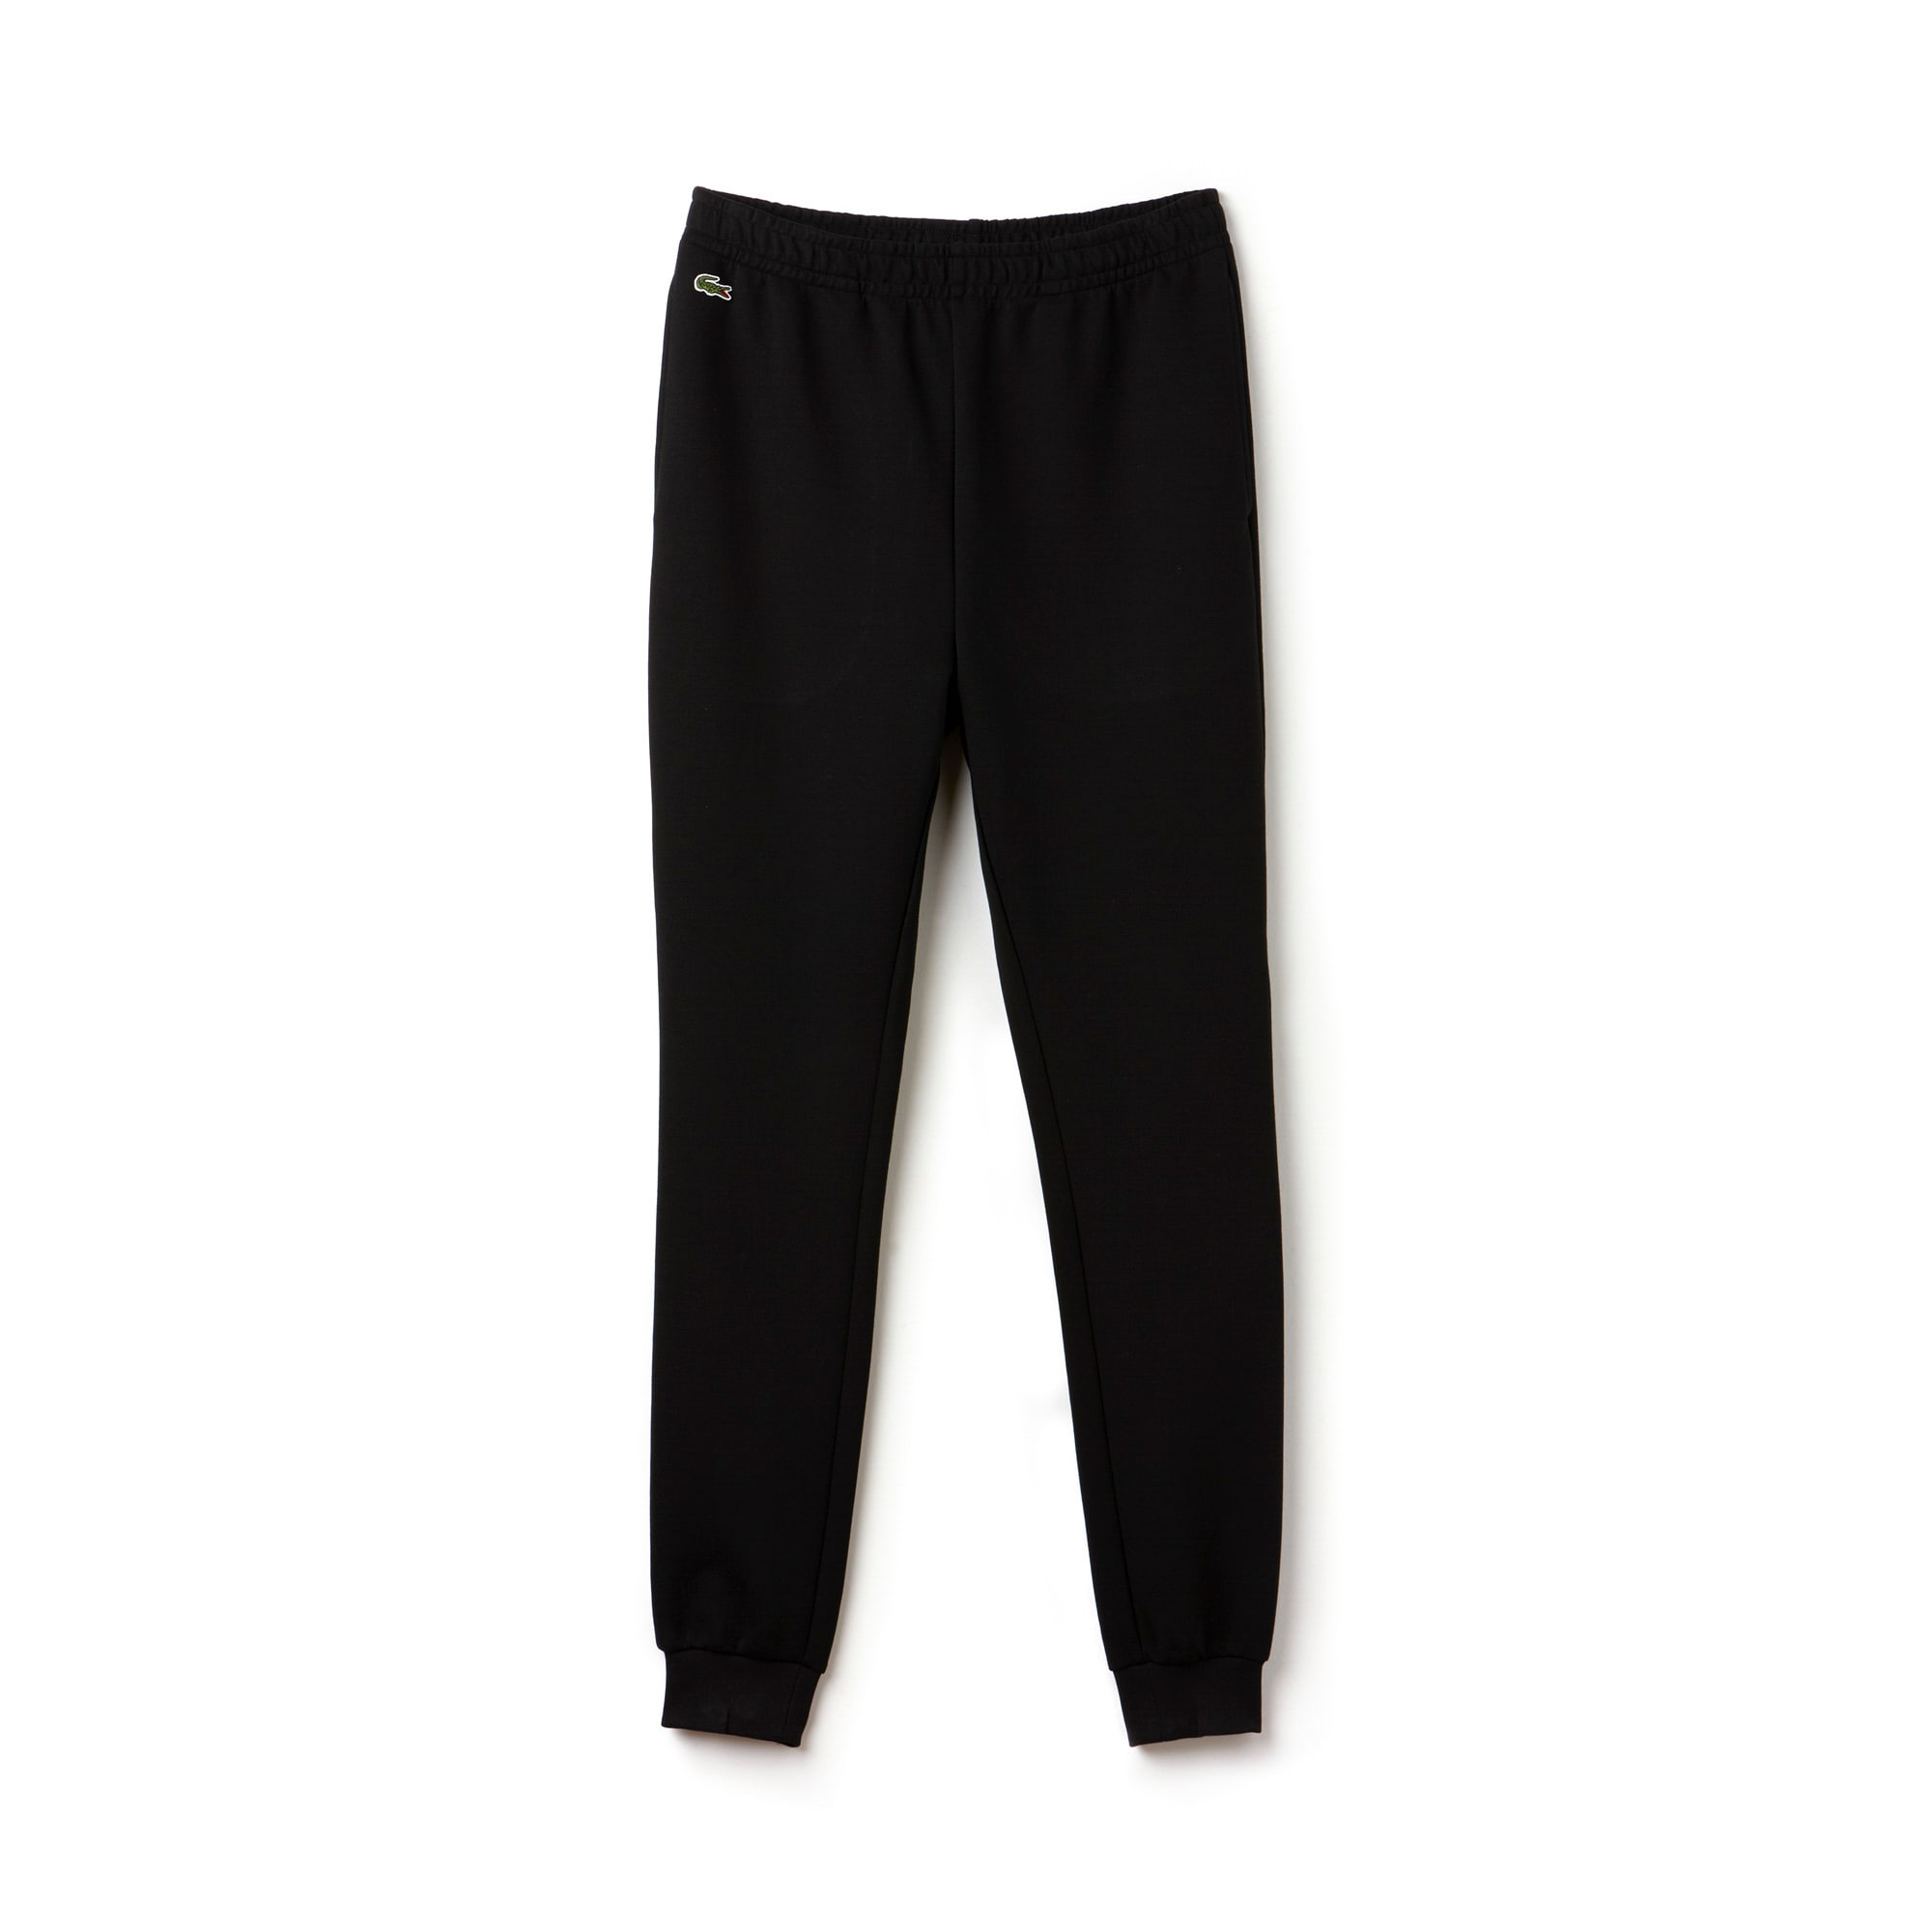 Men's SPORT Lifestyle Tennis Pants